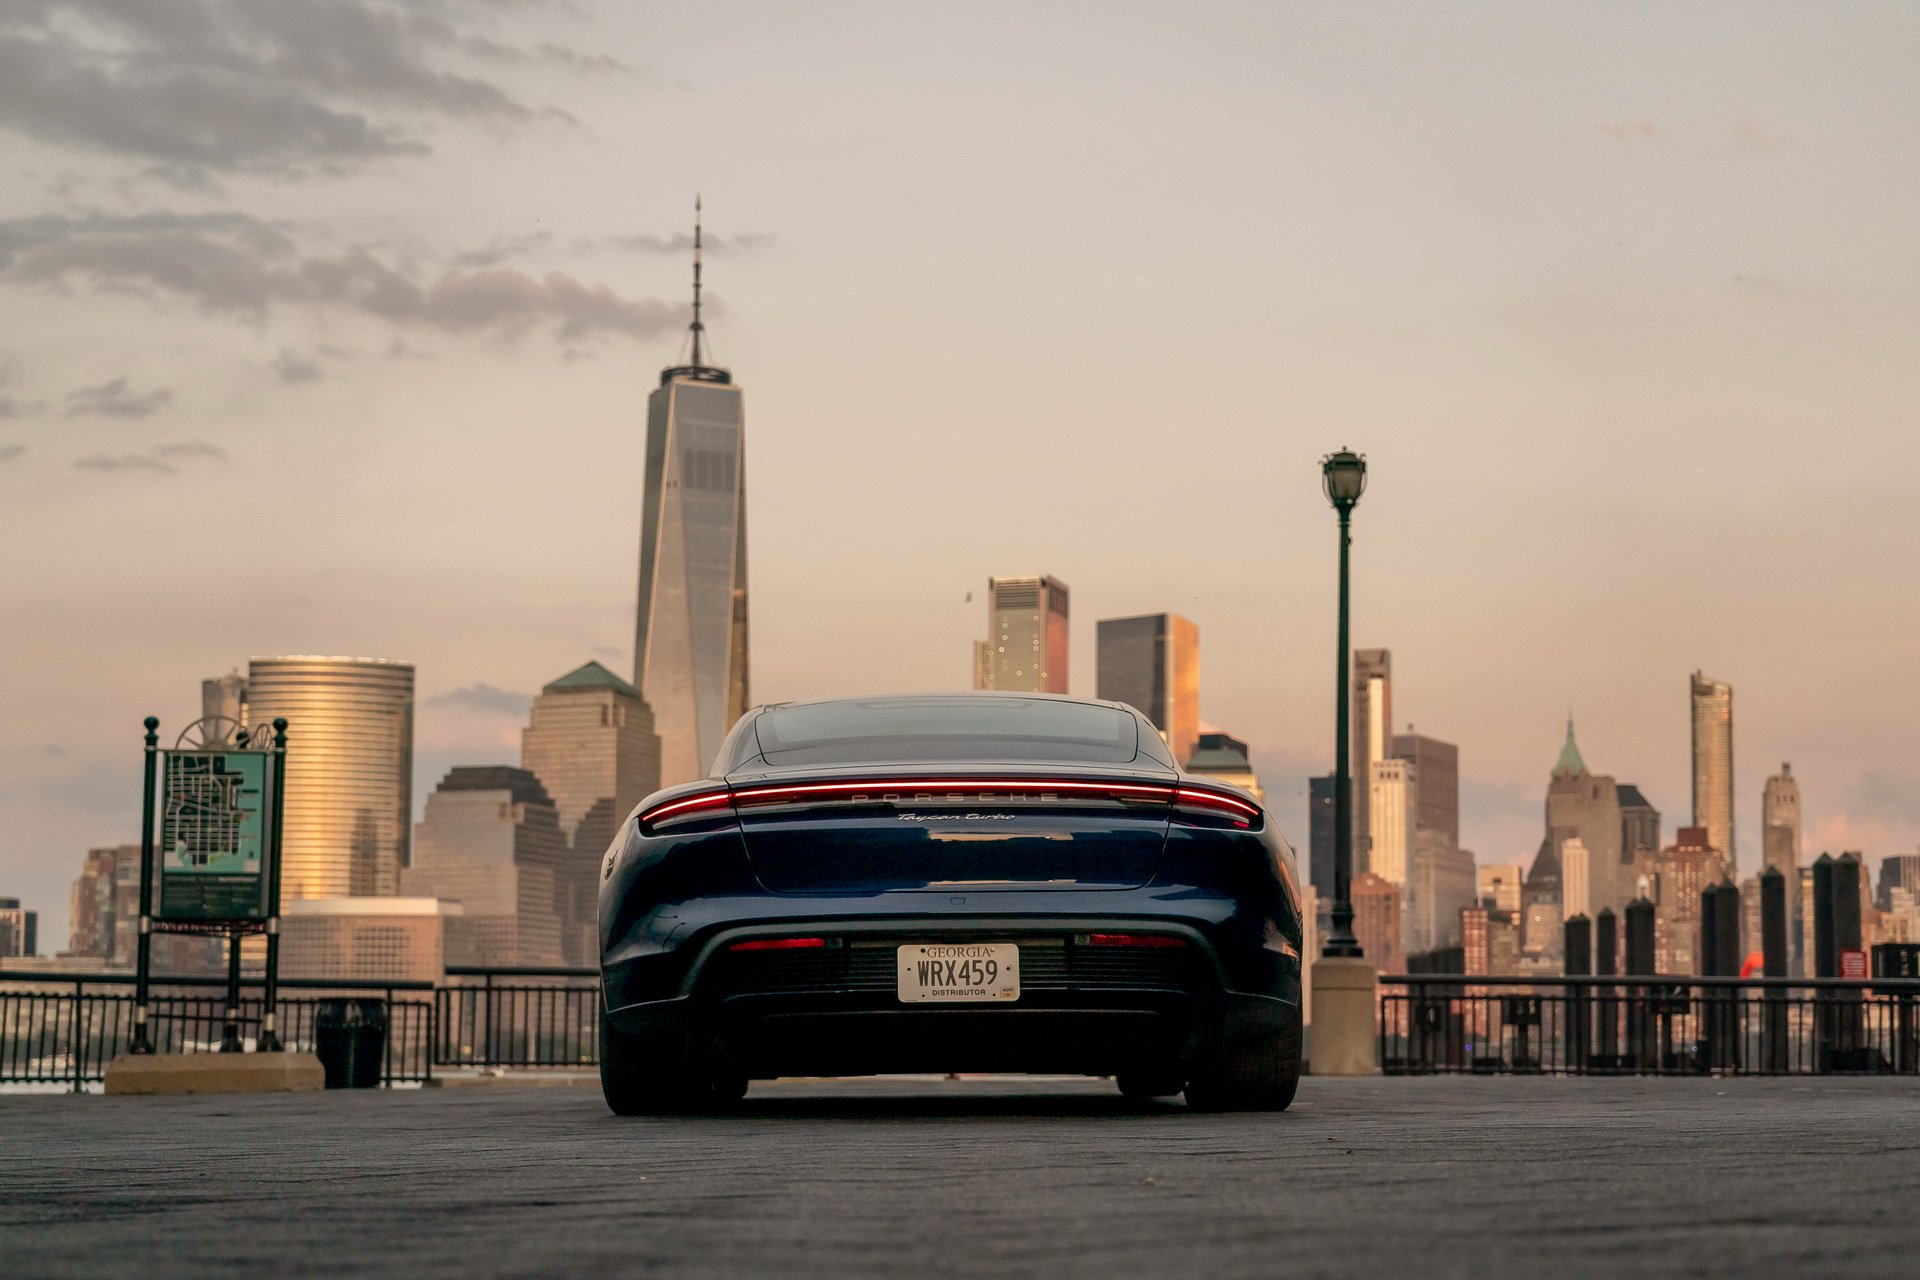 Porsche-Taycan-Niagara-Falls-to-New-York-4